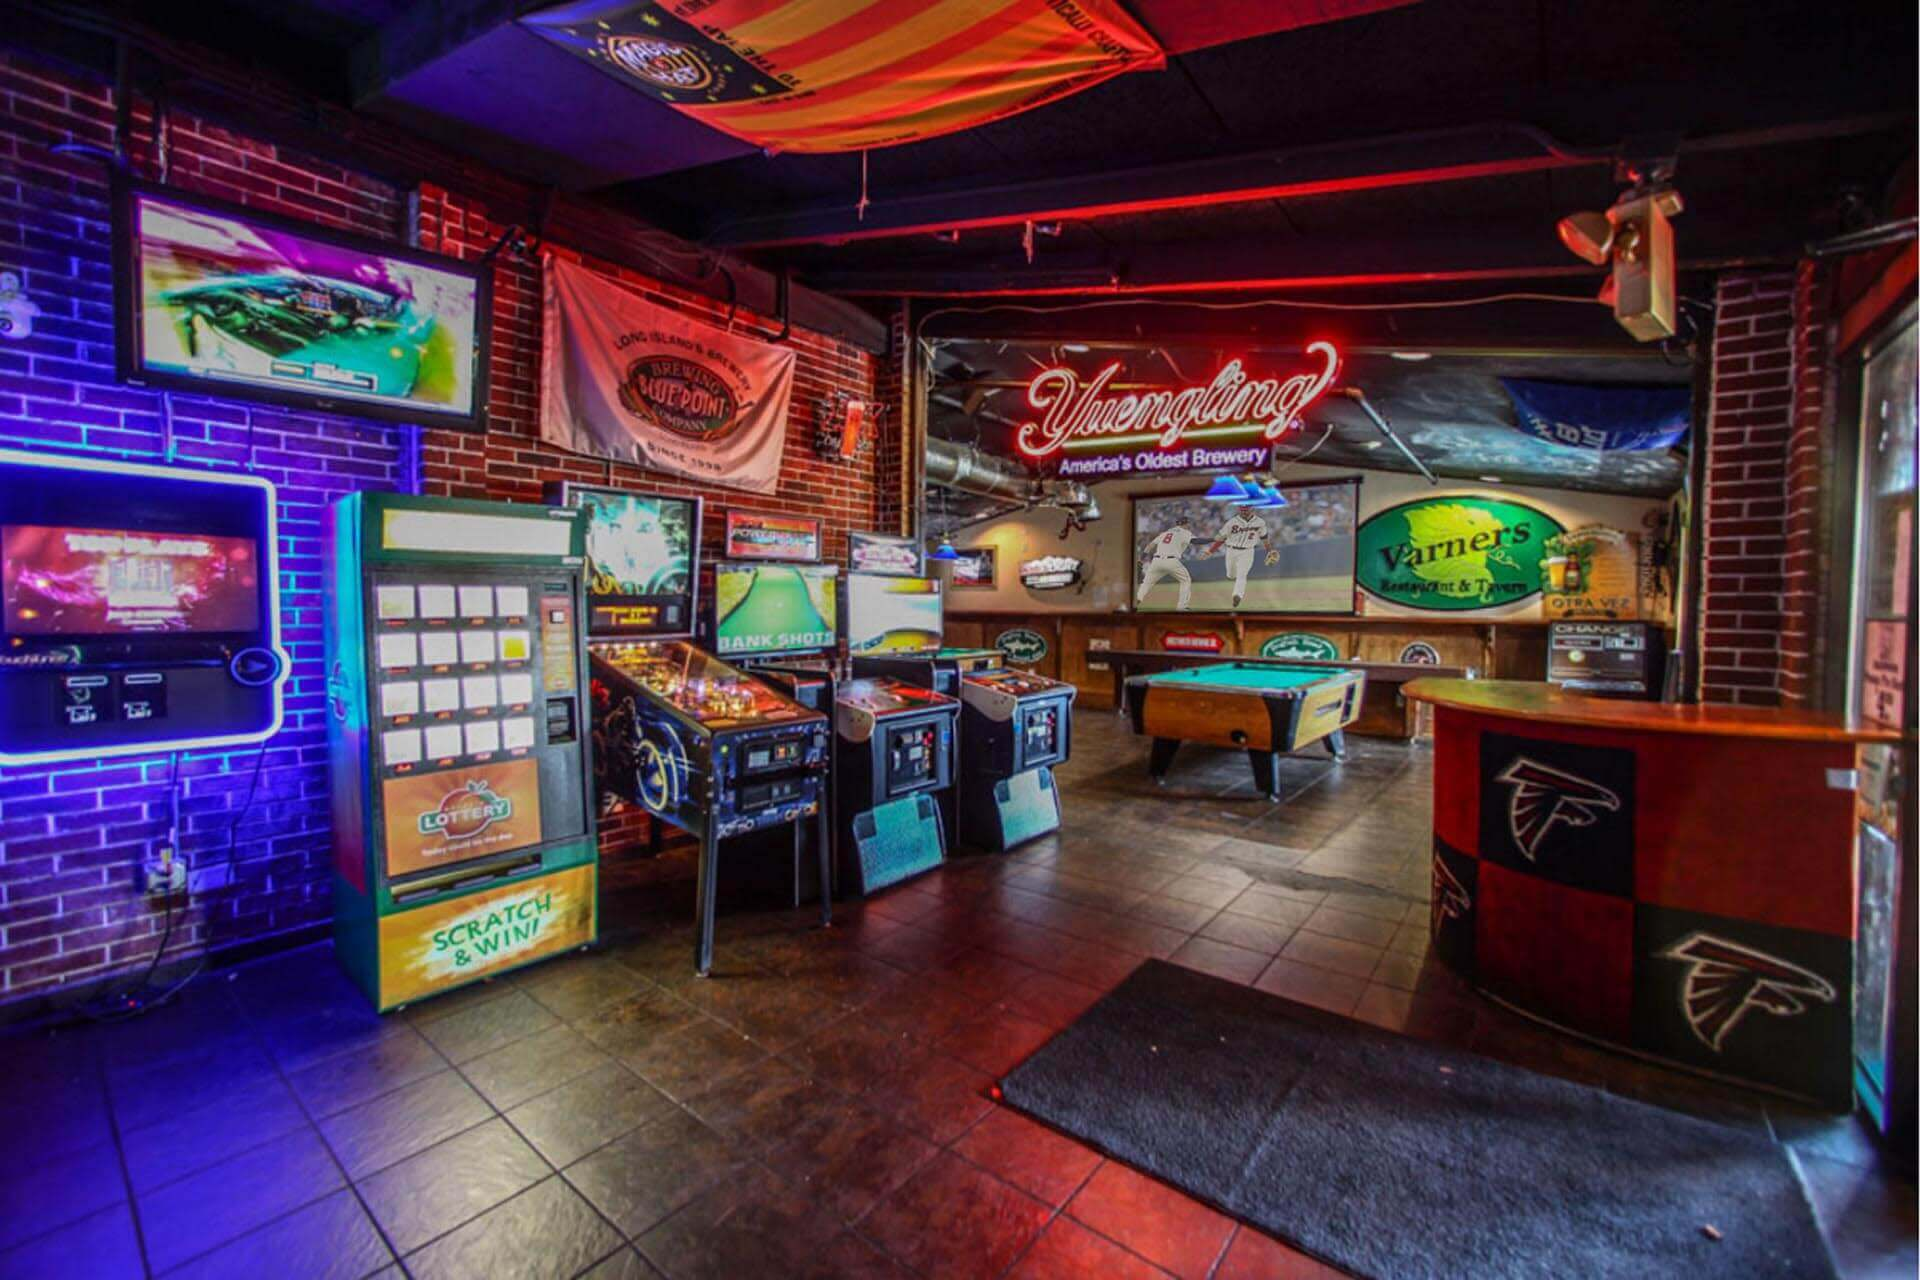 Game Room - Golden Tee - Pool - Pinball